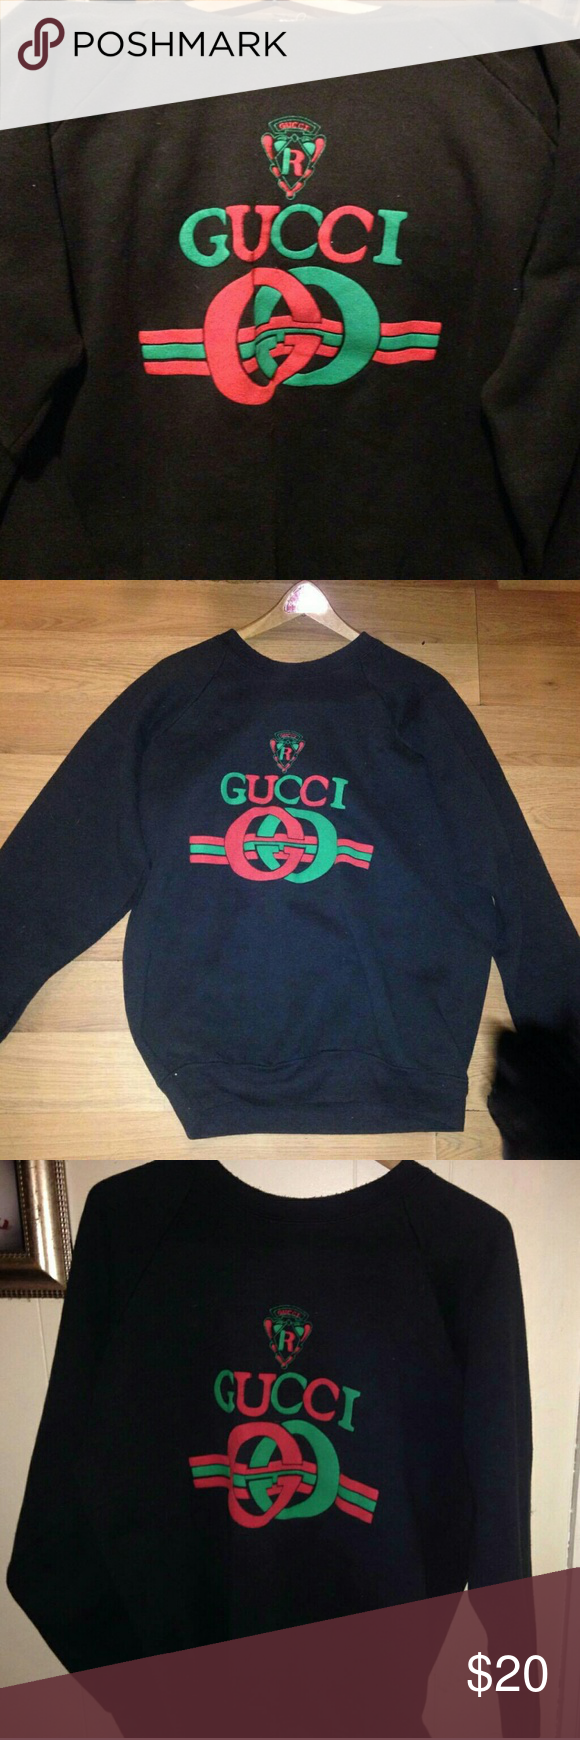 0611eefc6c34 Oversized Gucci Sweatshirt Very comfortable, thick material, easy to layer  with. Great to lounge around in. Never worn. Willing to lower price as well.